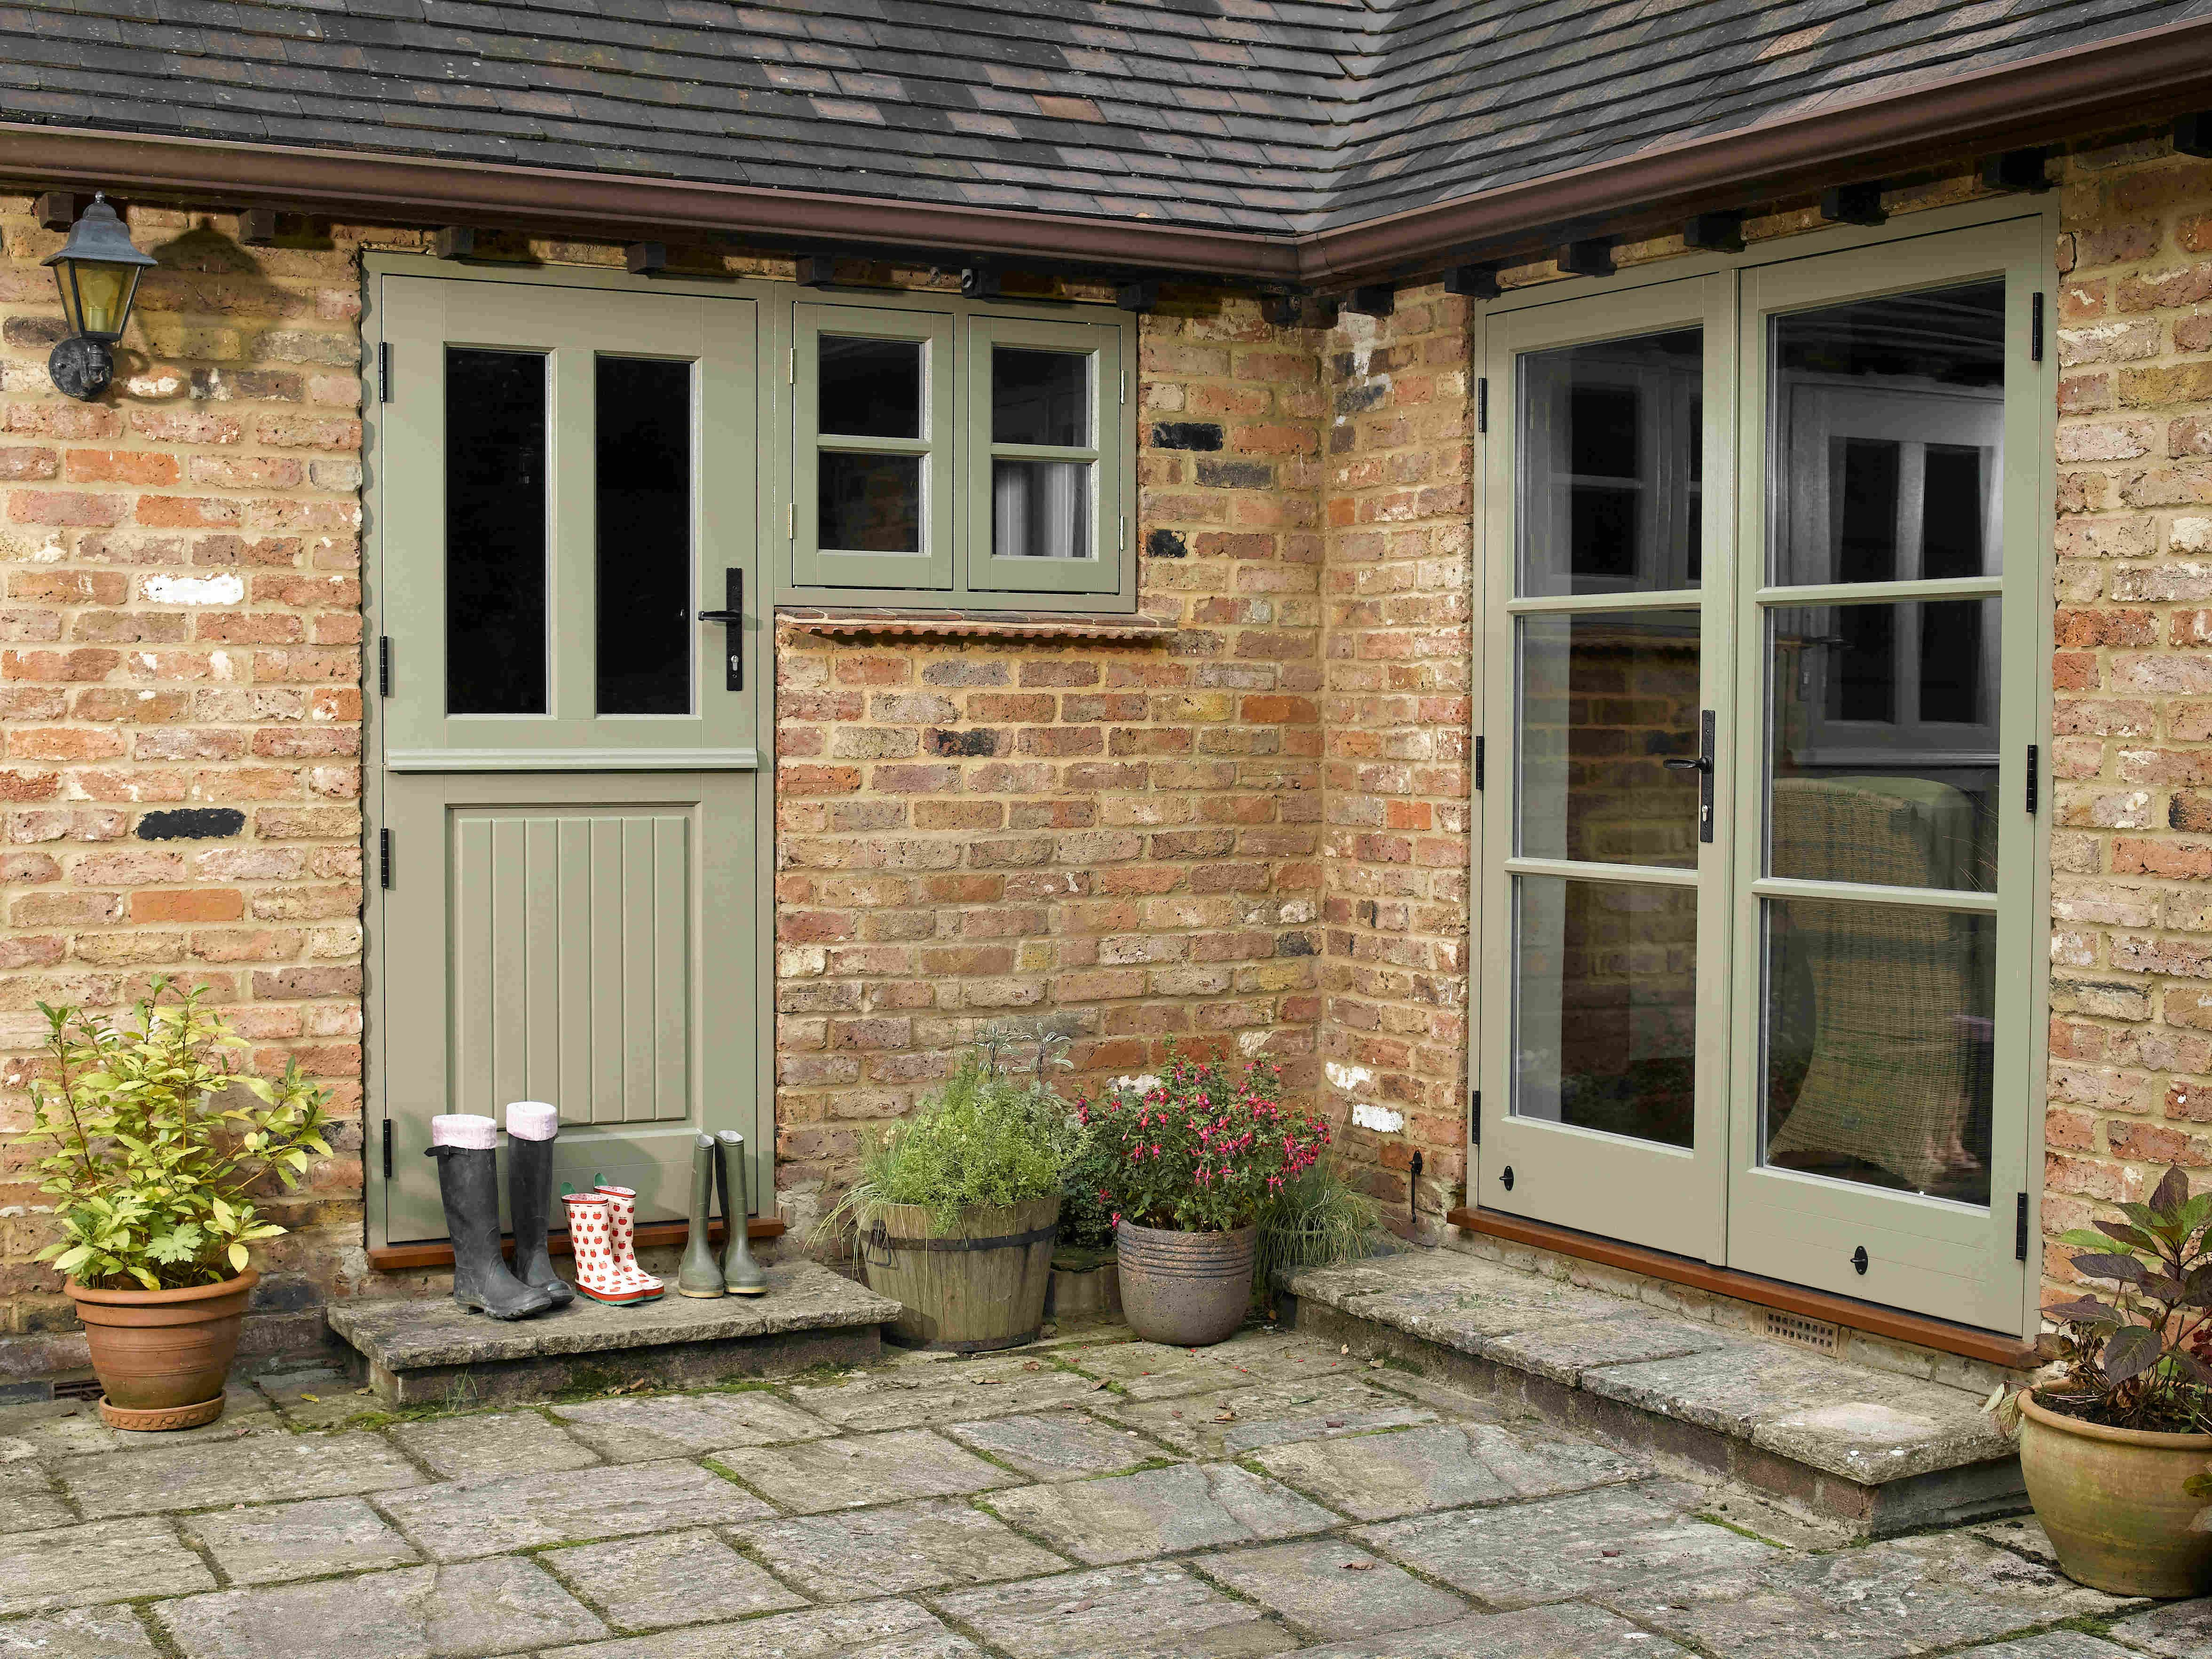 Stable Doors From Timber Windows Primitive Colonial Rustic